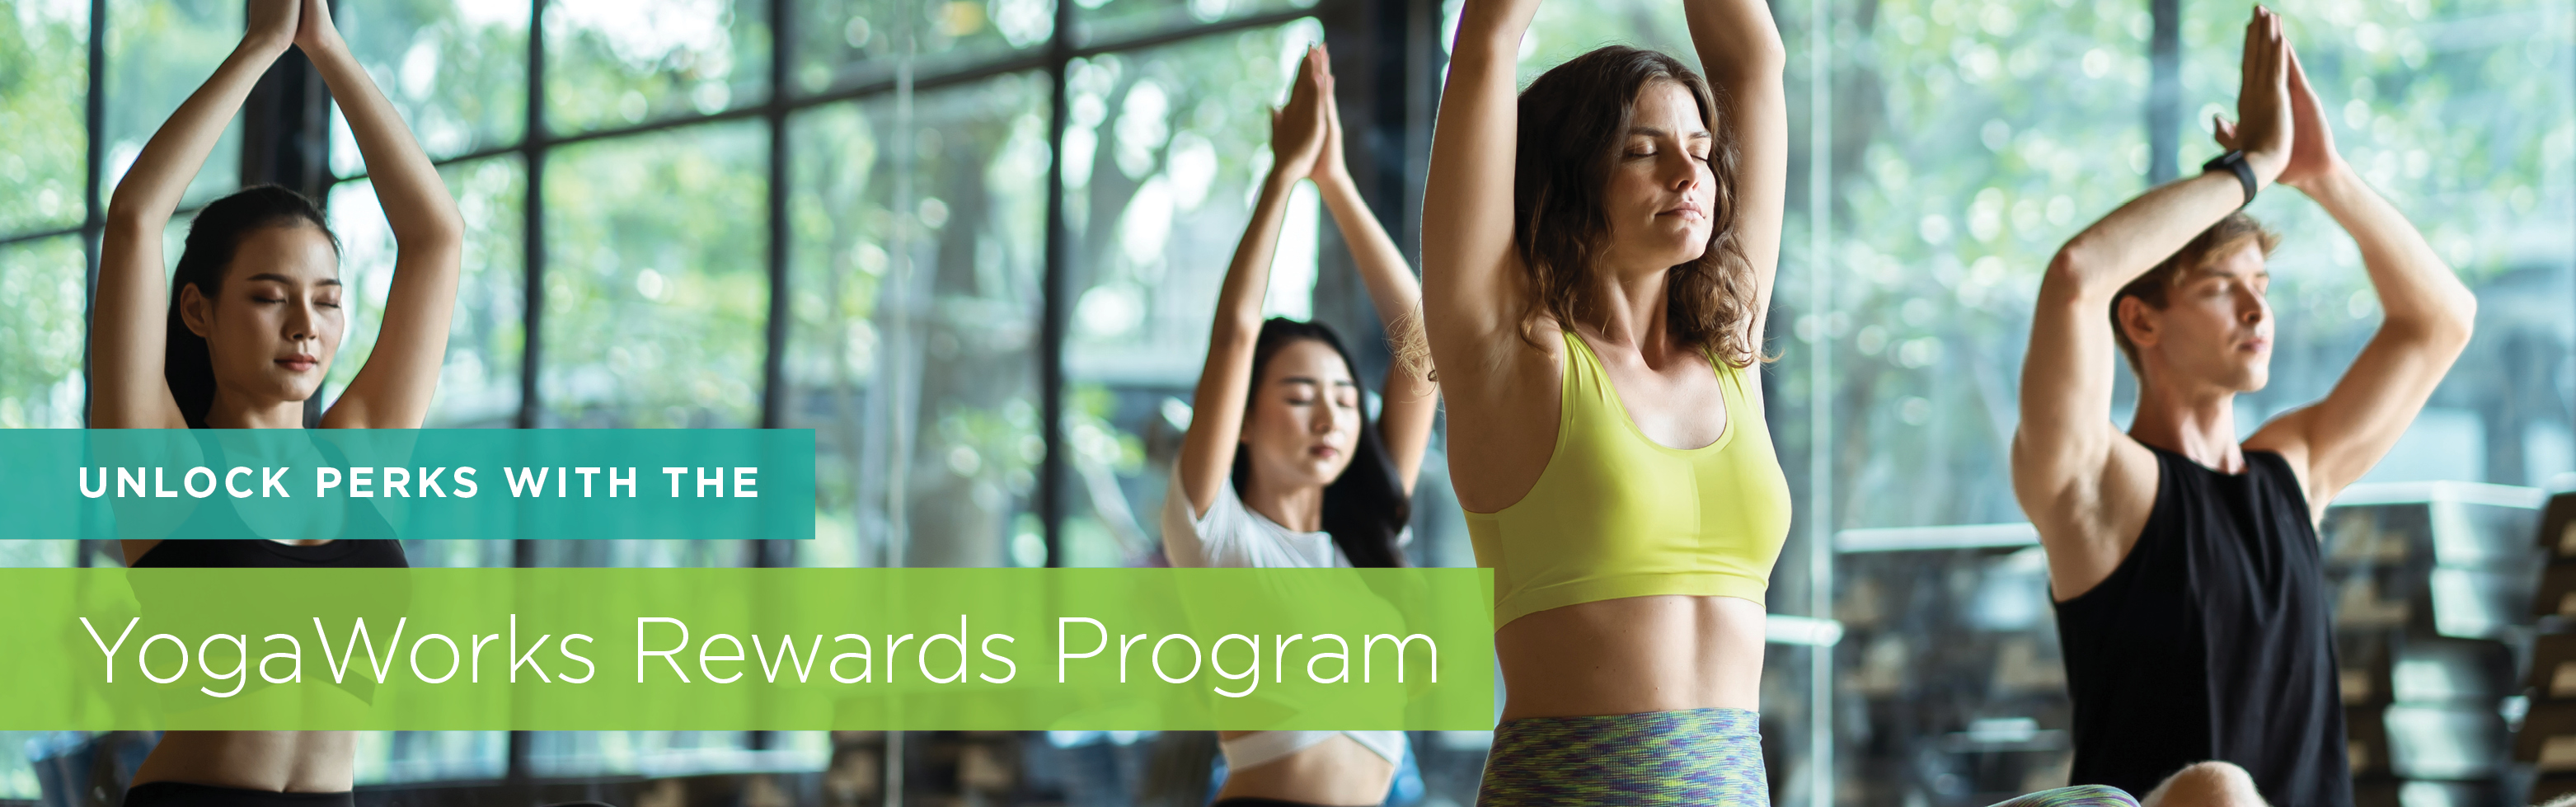 YogaWorks Rewards Program